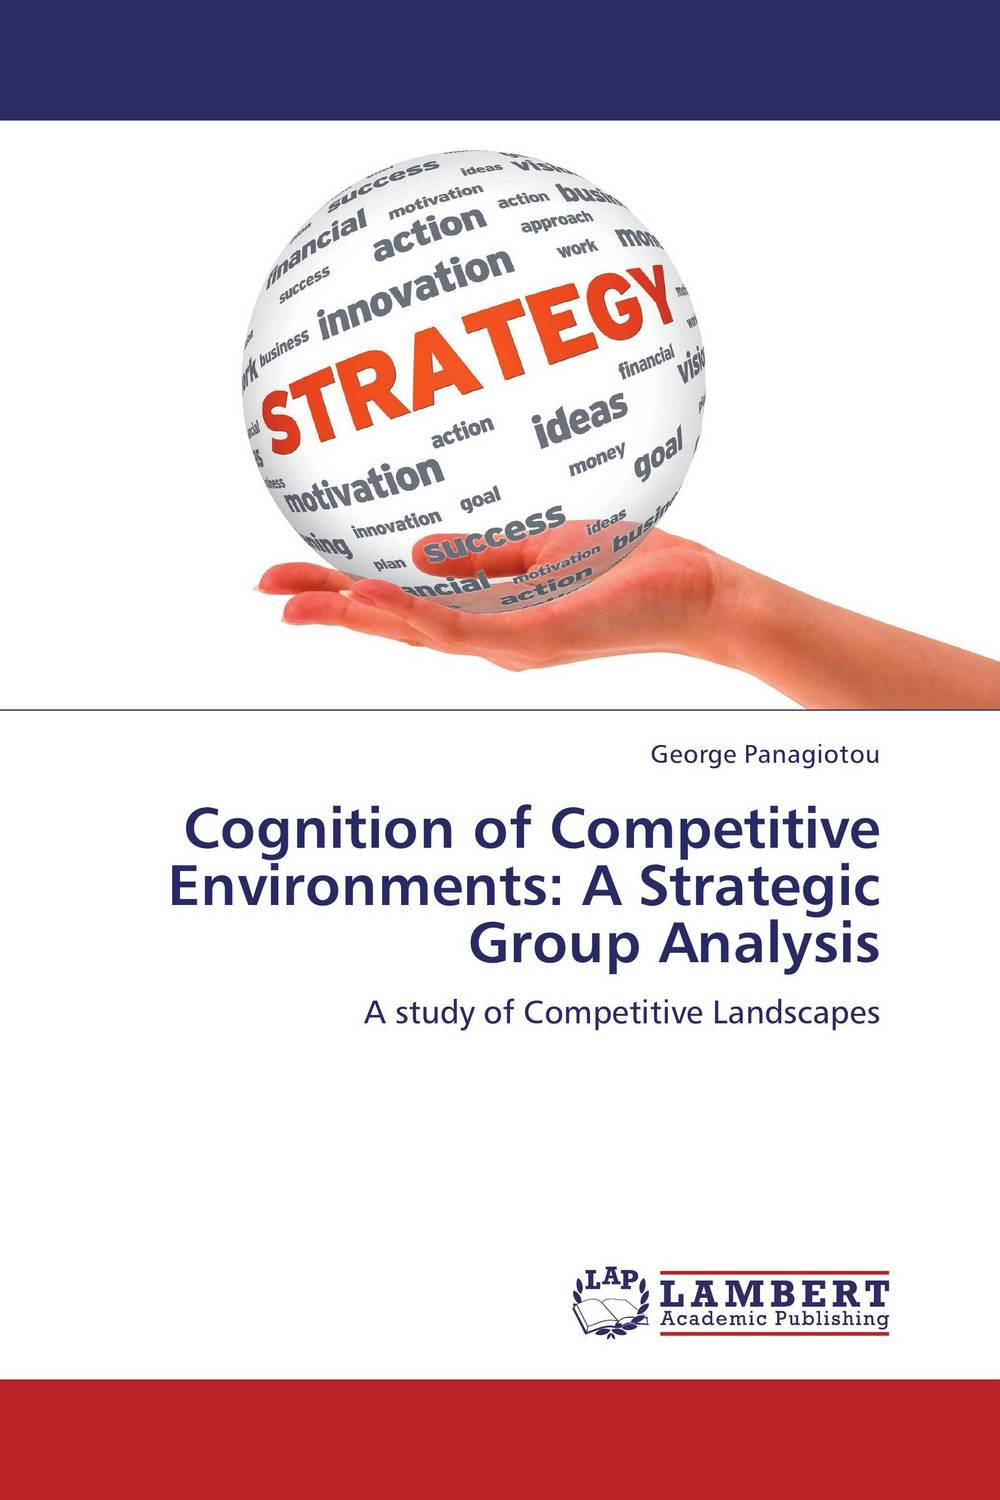 Cognition of Competitive Environments: A Strategic Group Analysis